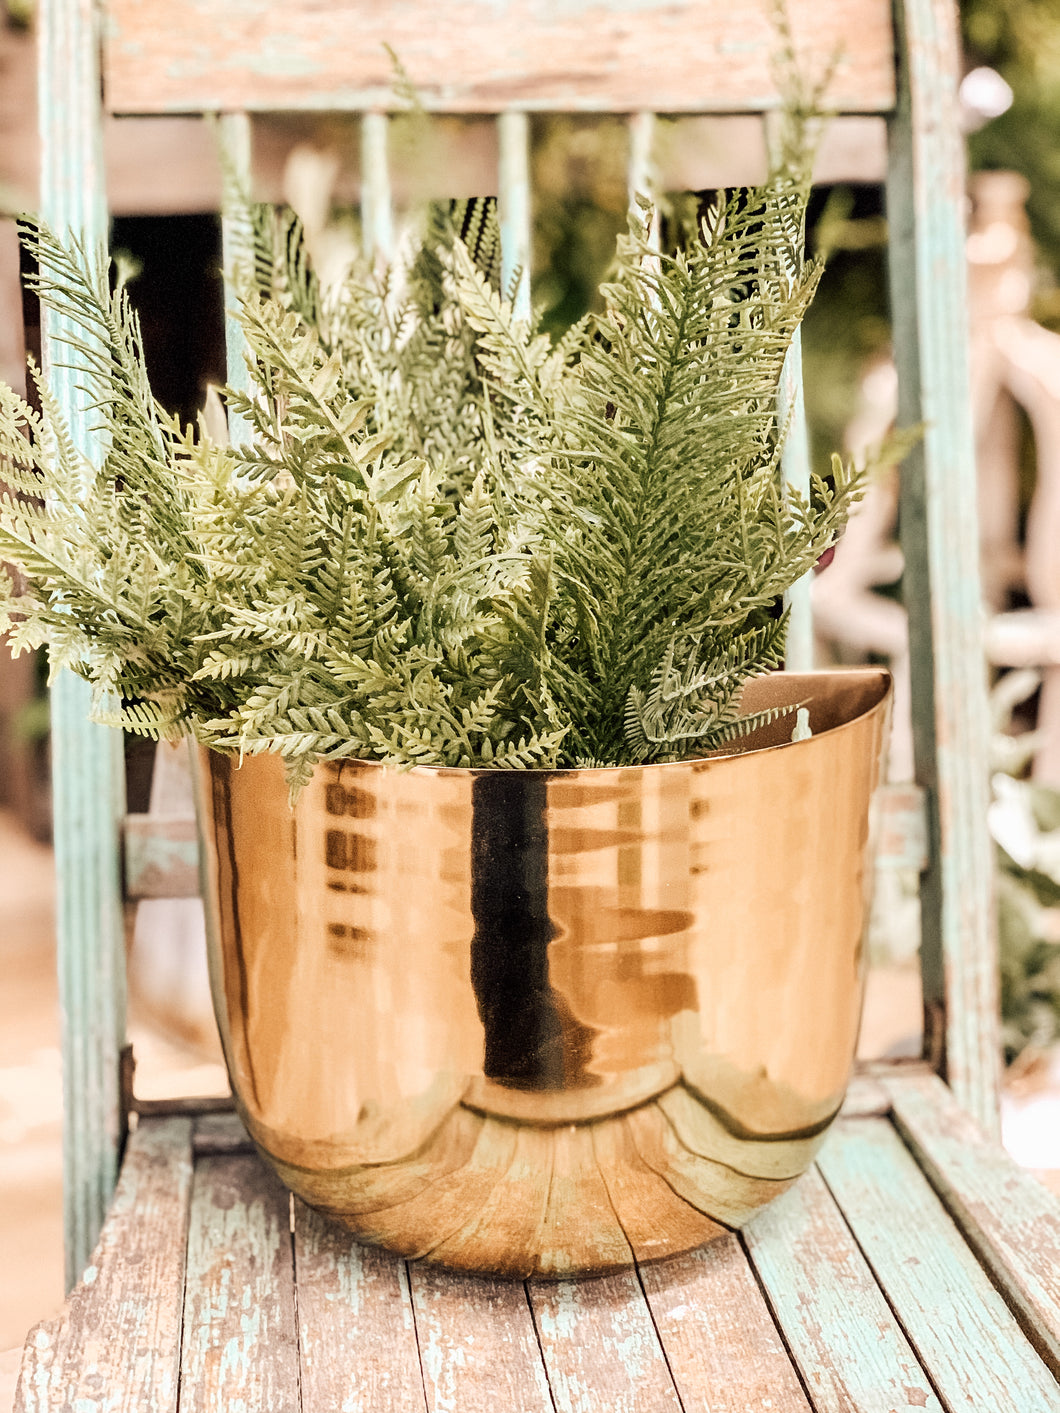 Hold Metal Wall Planter - gorgeous! - Baycreek & Co